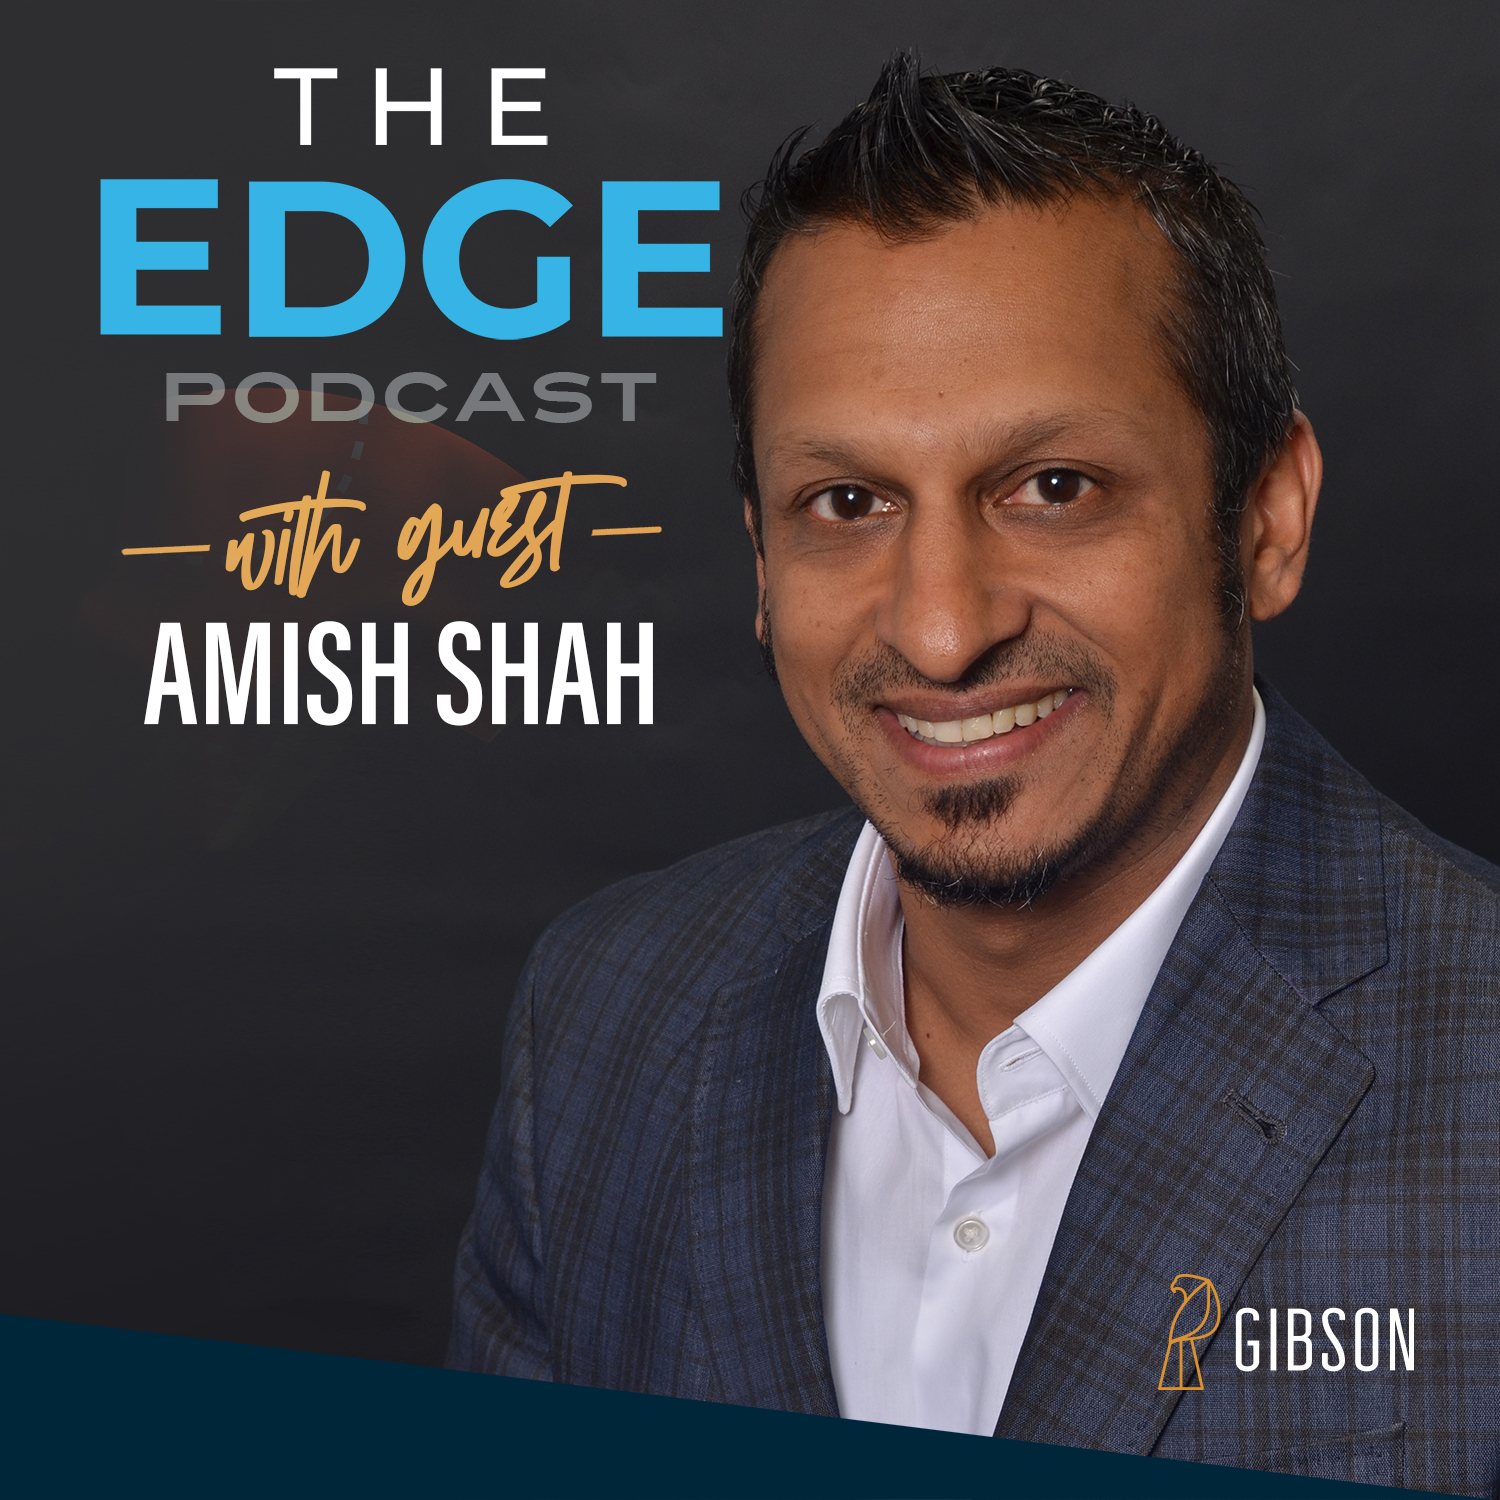 Amish Shah discusses building your team and company for the future